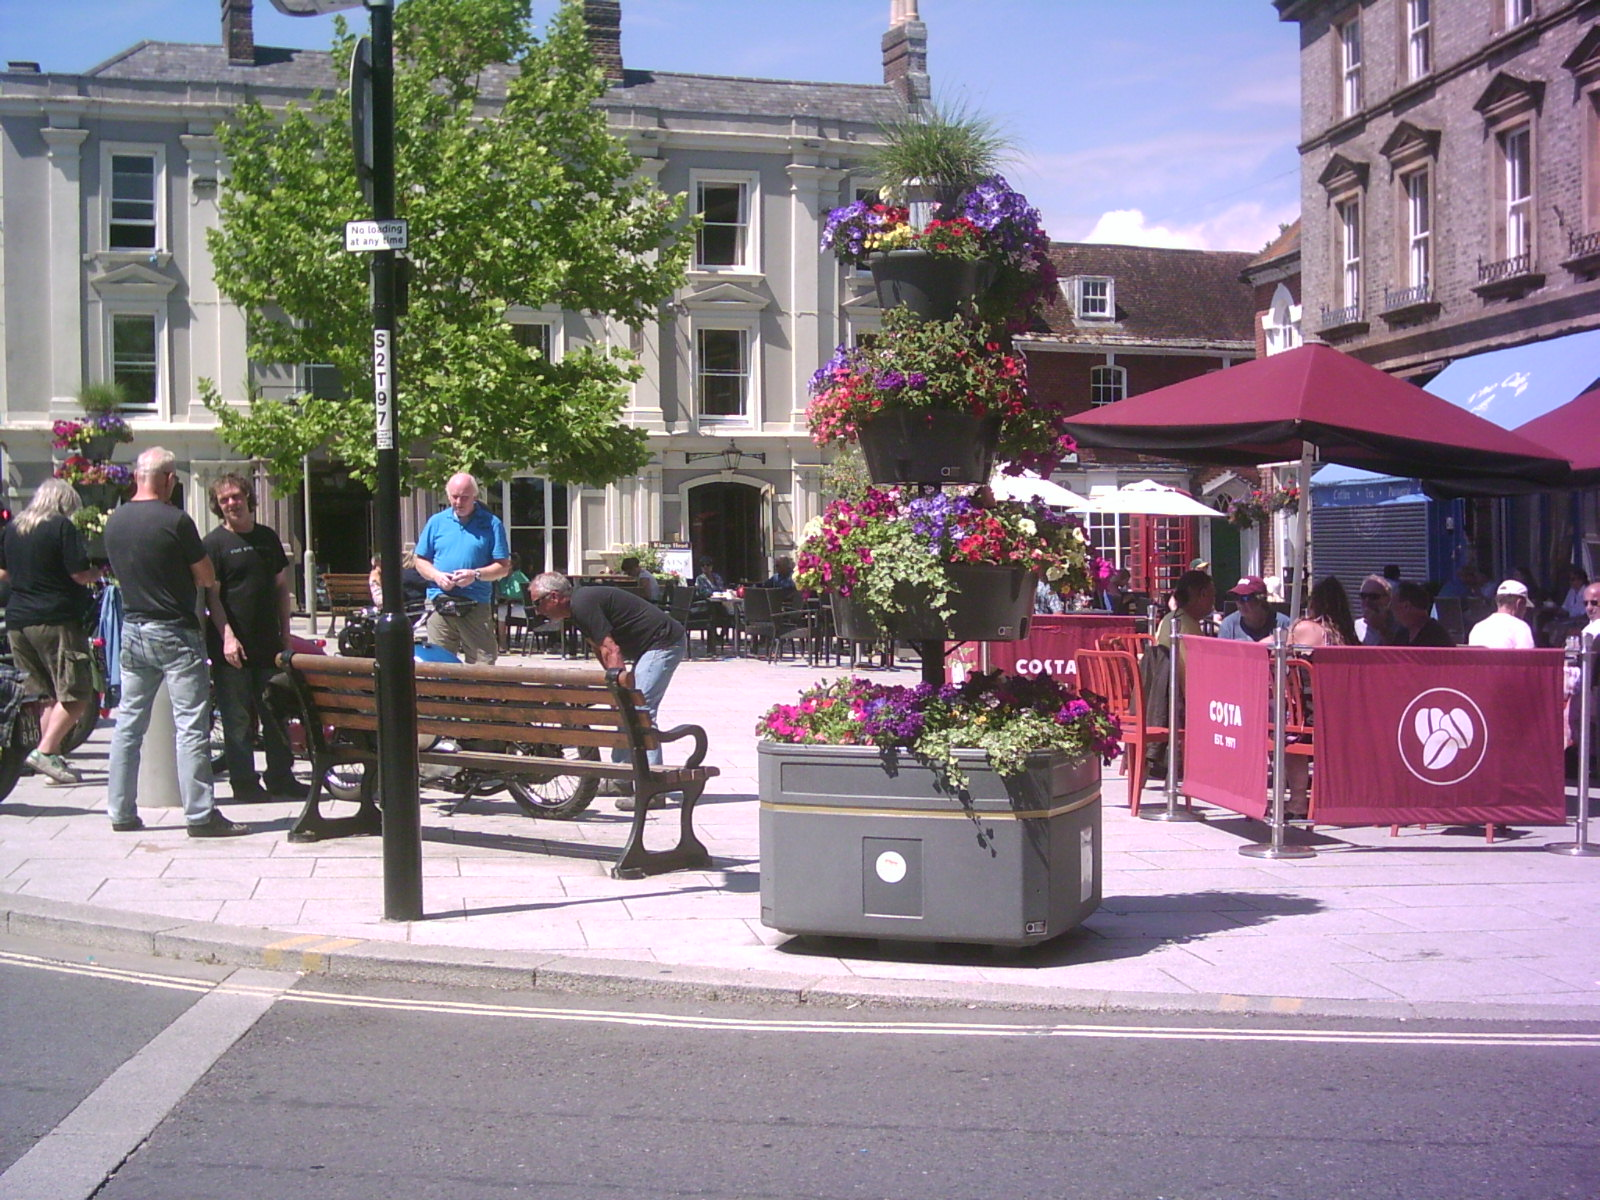 Kings Head public house in the Square where visitors enjoy refreshments outside the cafes